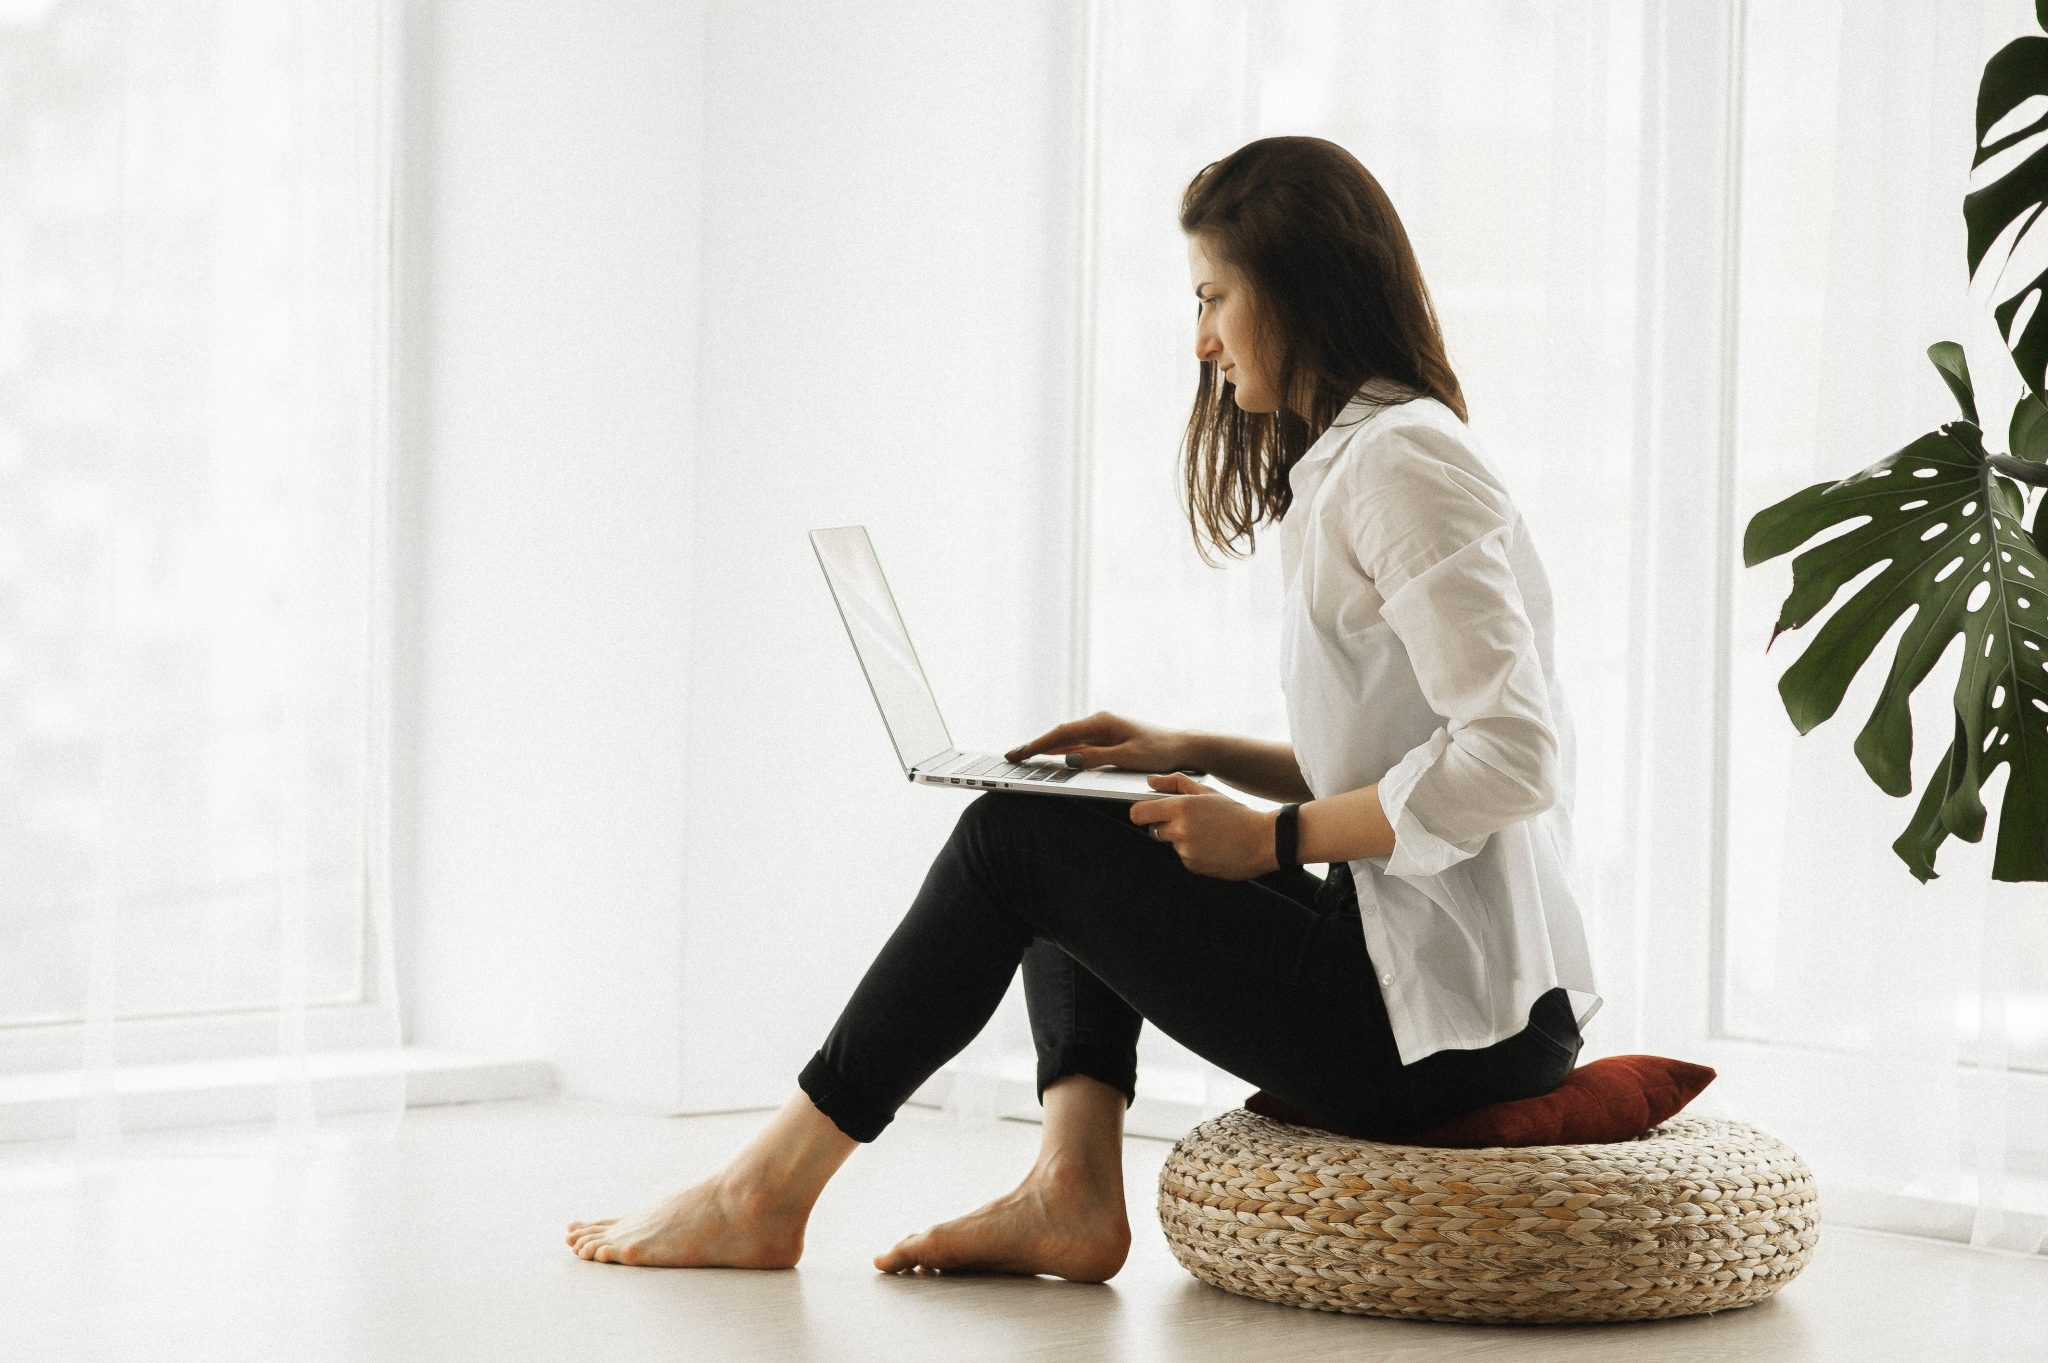 Learn a New Career Safely from Home